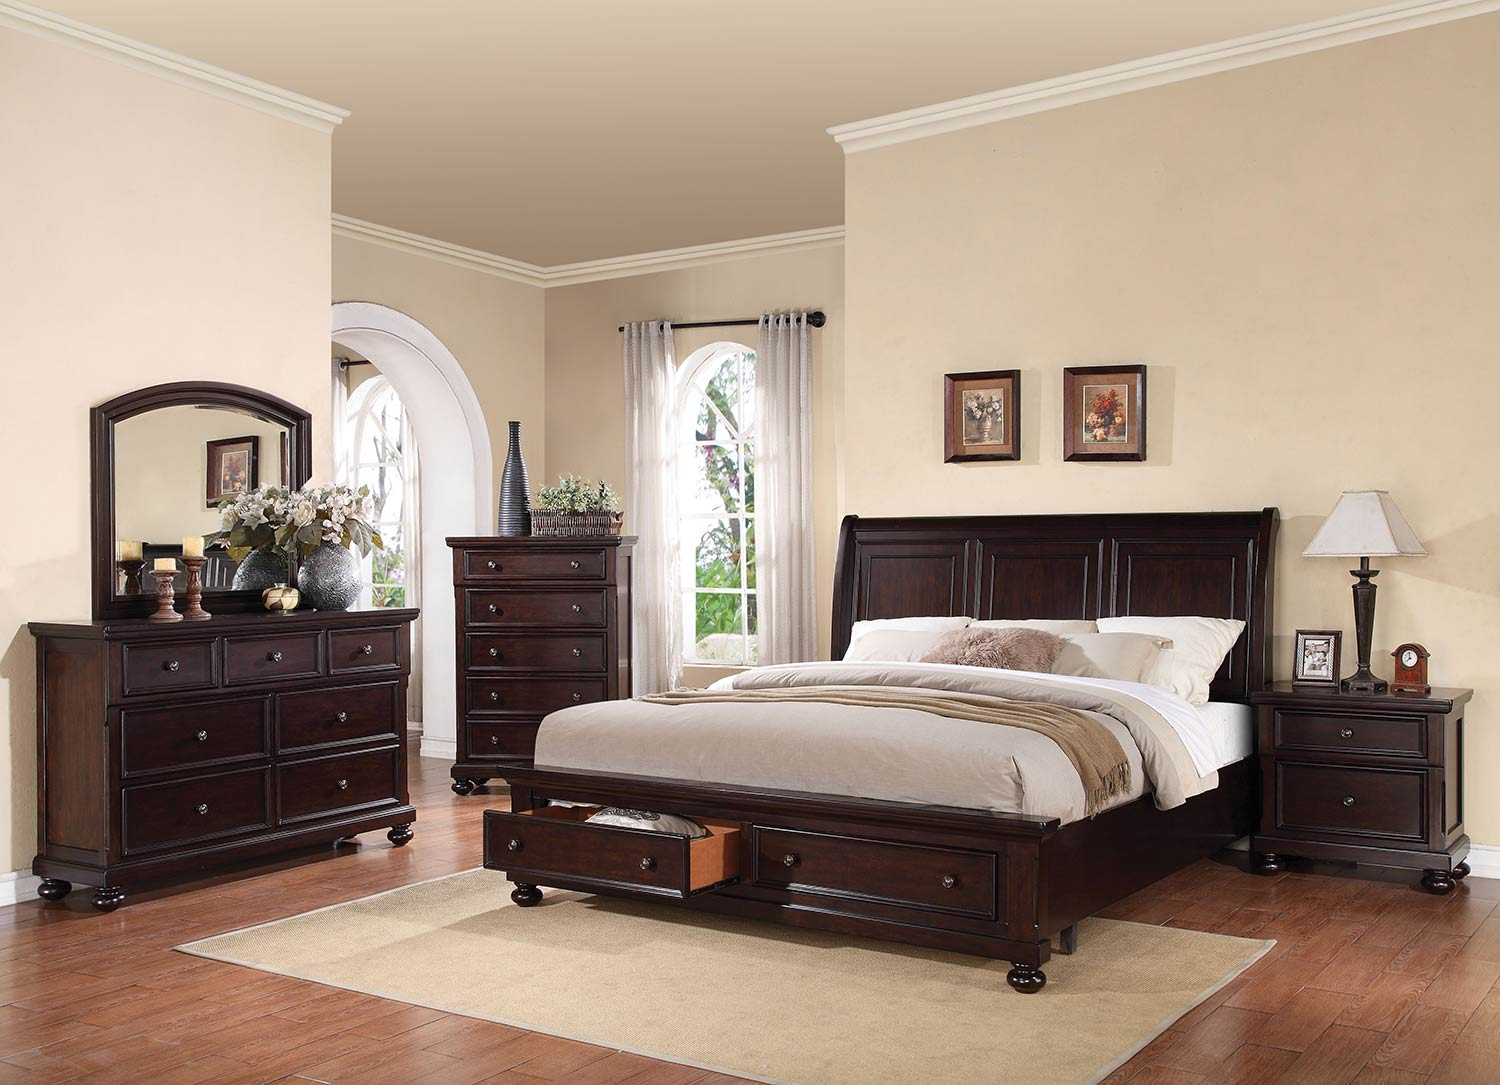 Acme Grayson Bedroom Set with Storage - Dark Walnut